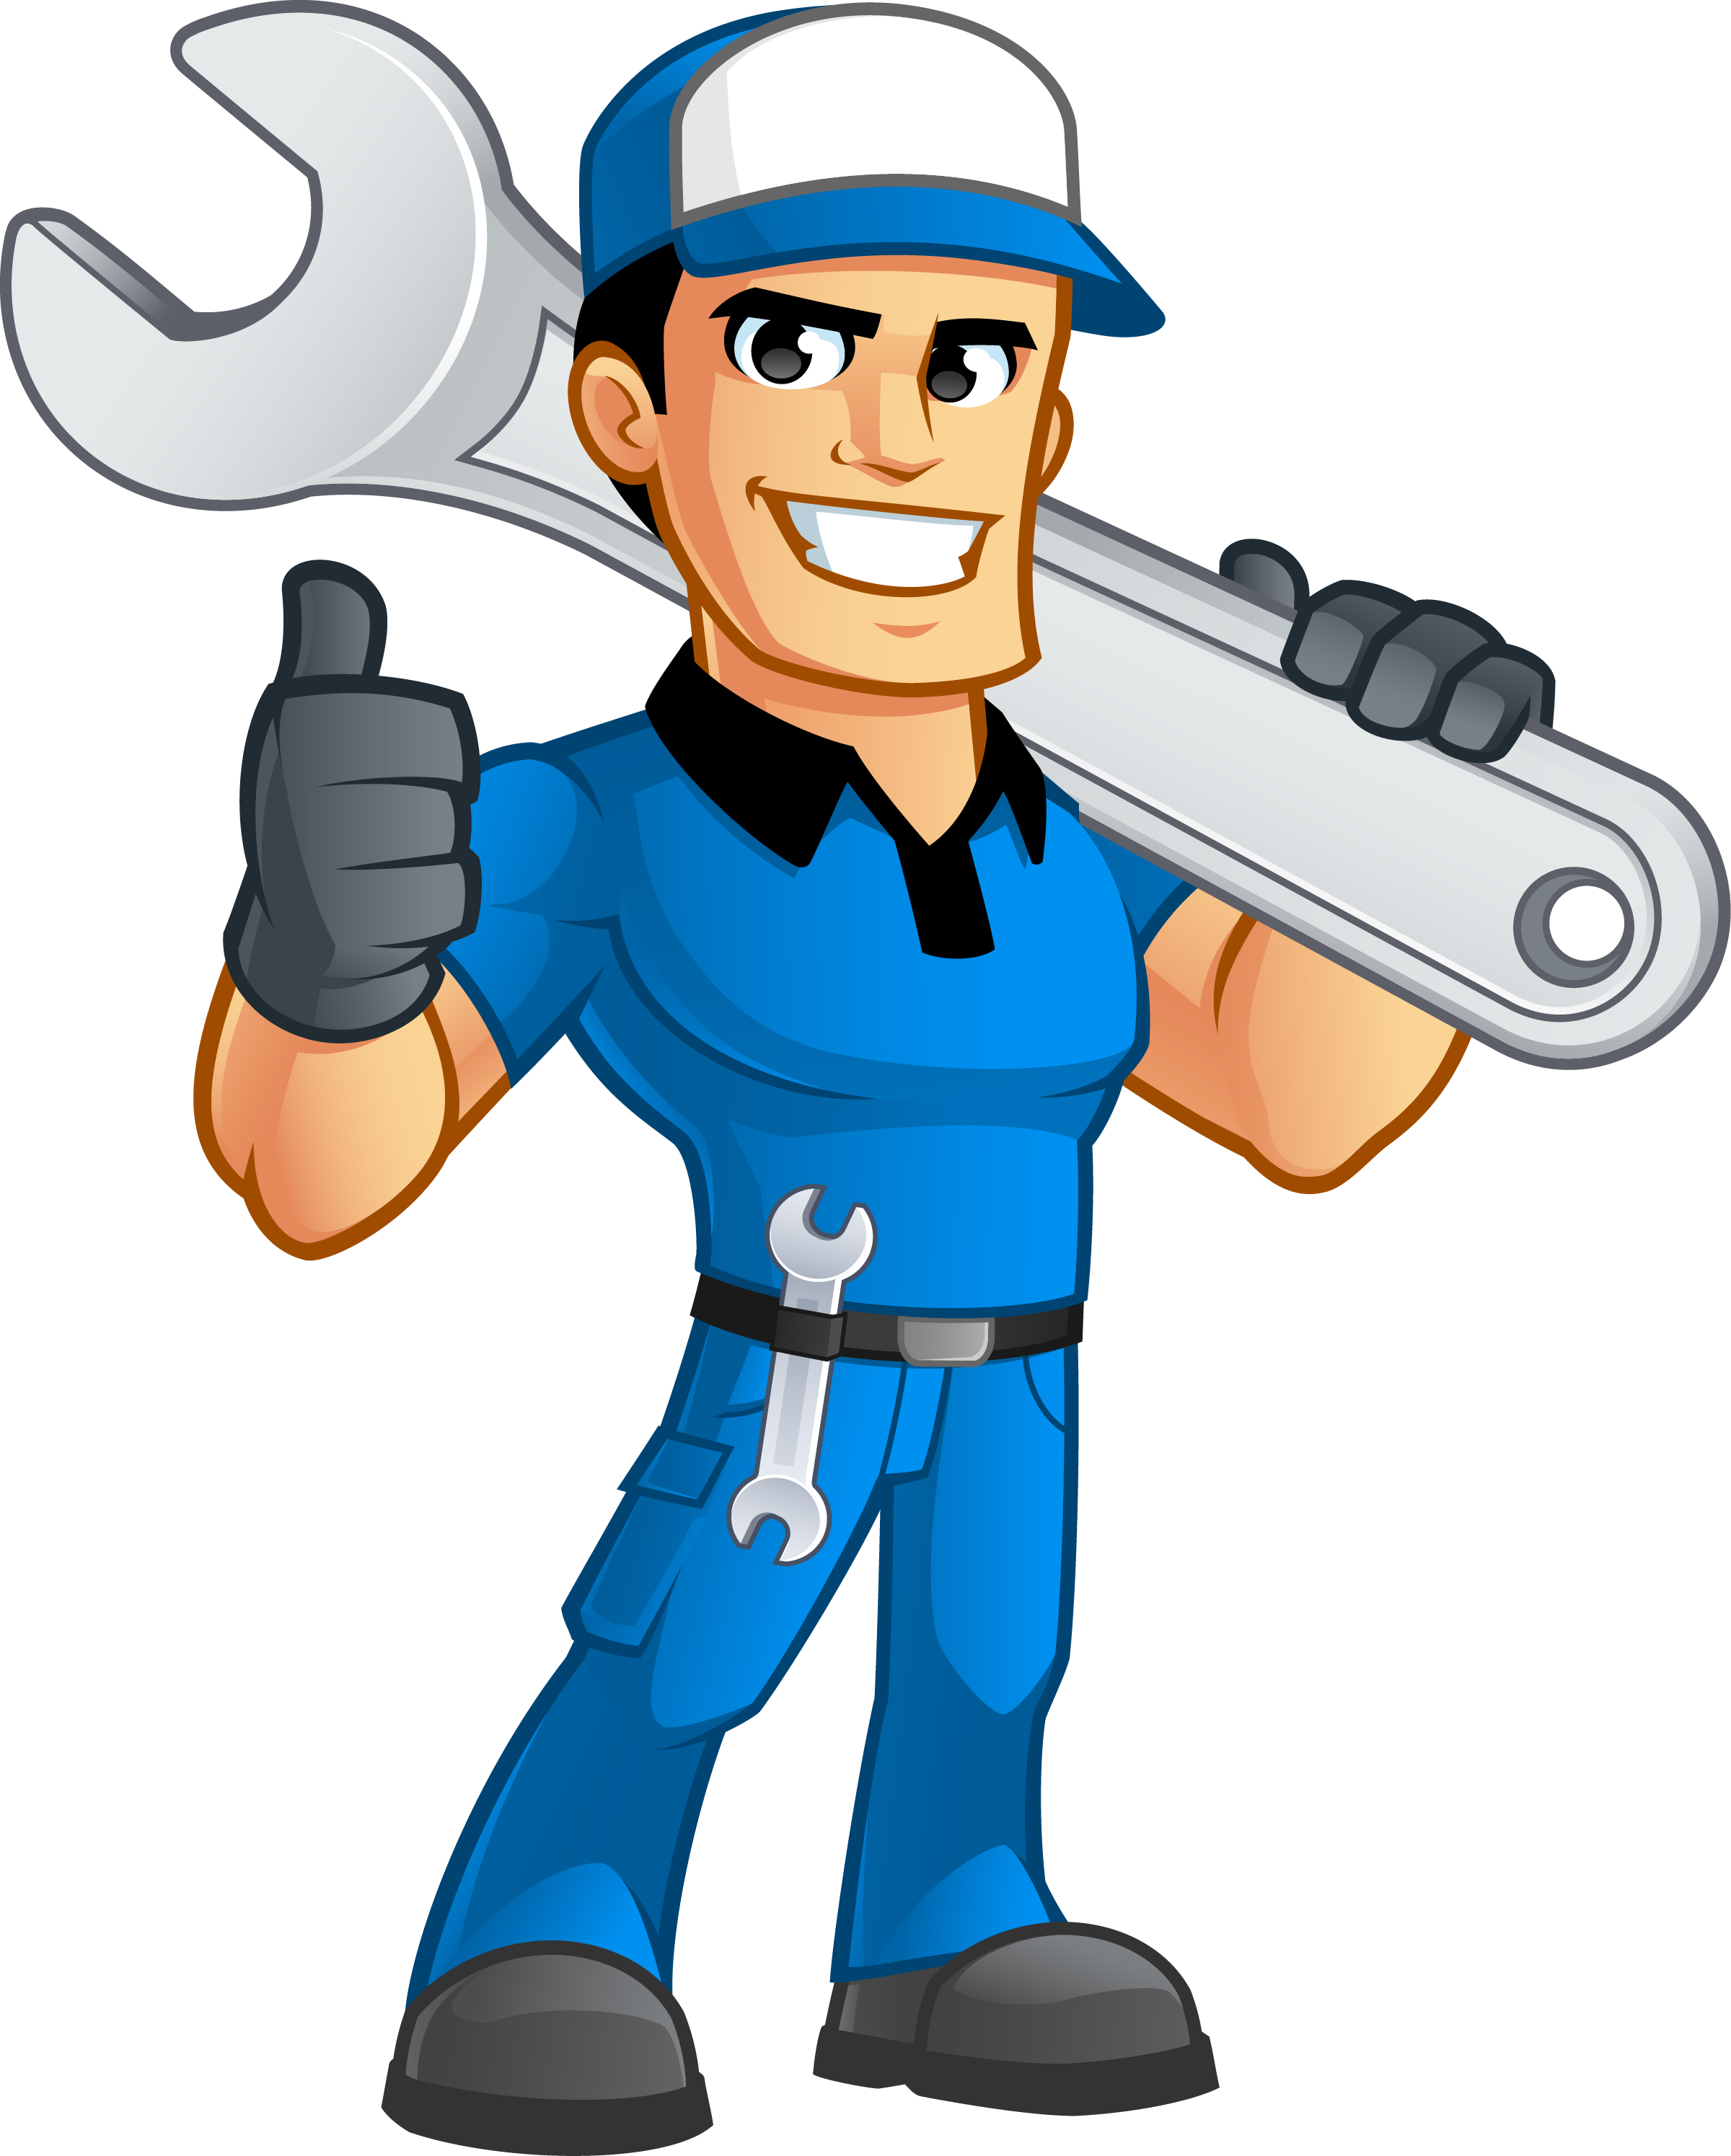 Airplane mechanic clipart free picture royalty free Similiar Airplane Mechanic Clip Art Keywords - Free Clipart picture royalty free